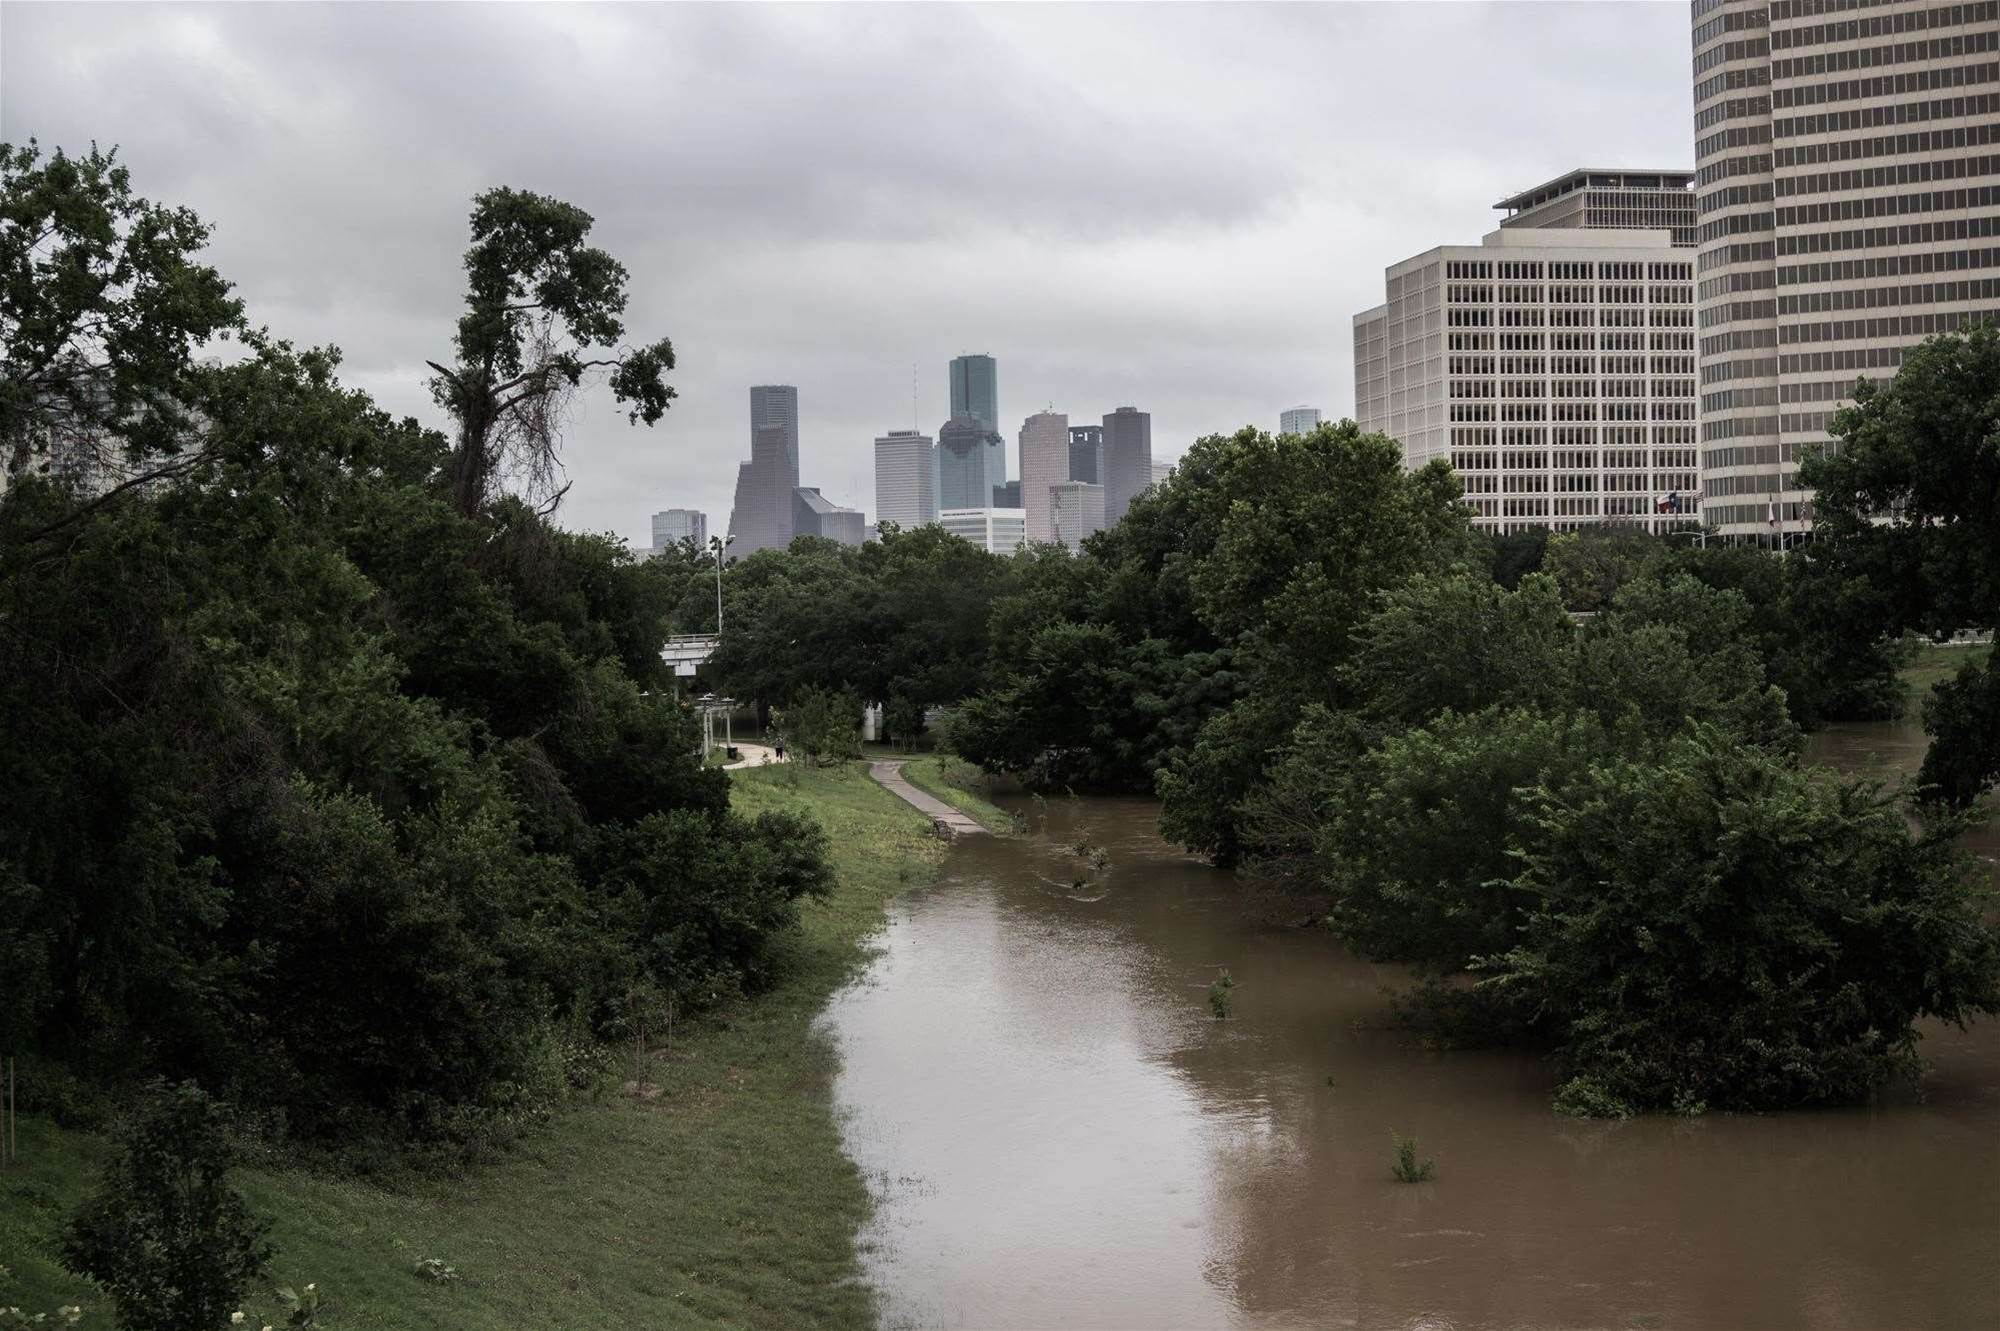 What's Causing The Flooding In Texas?